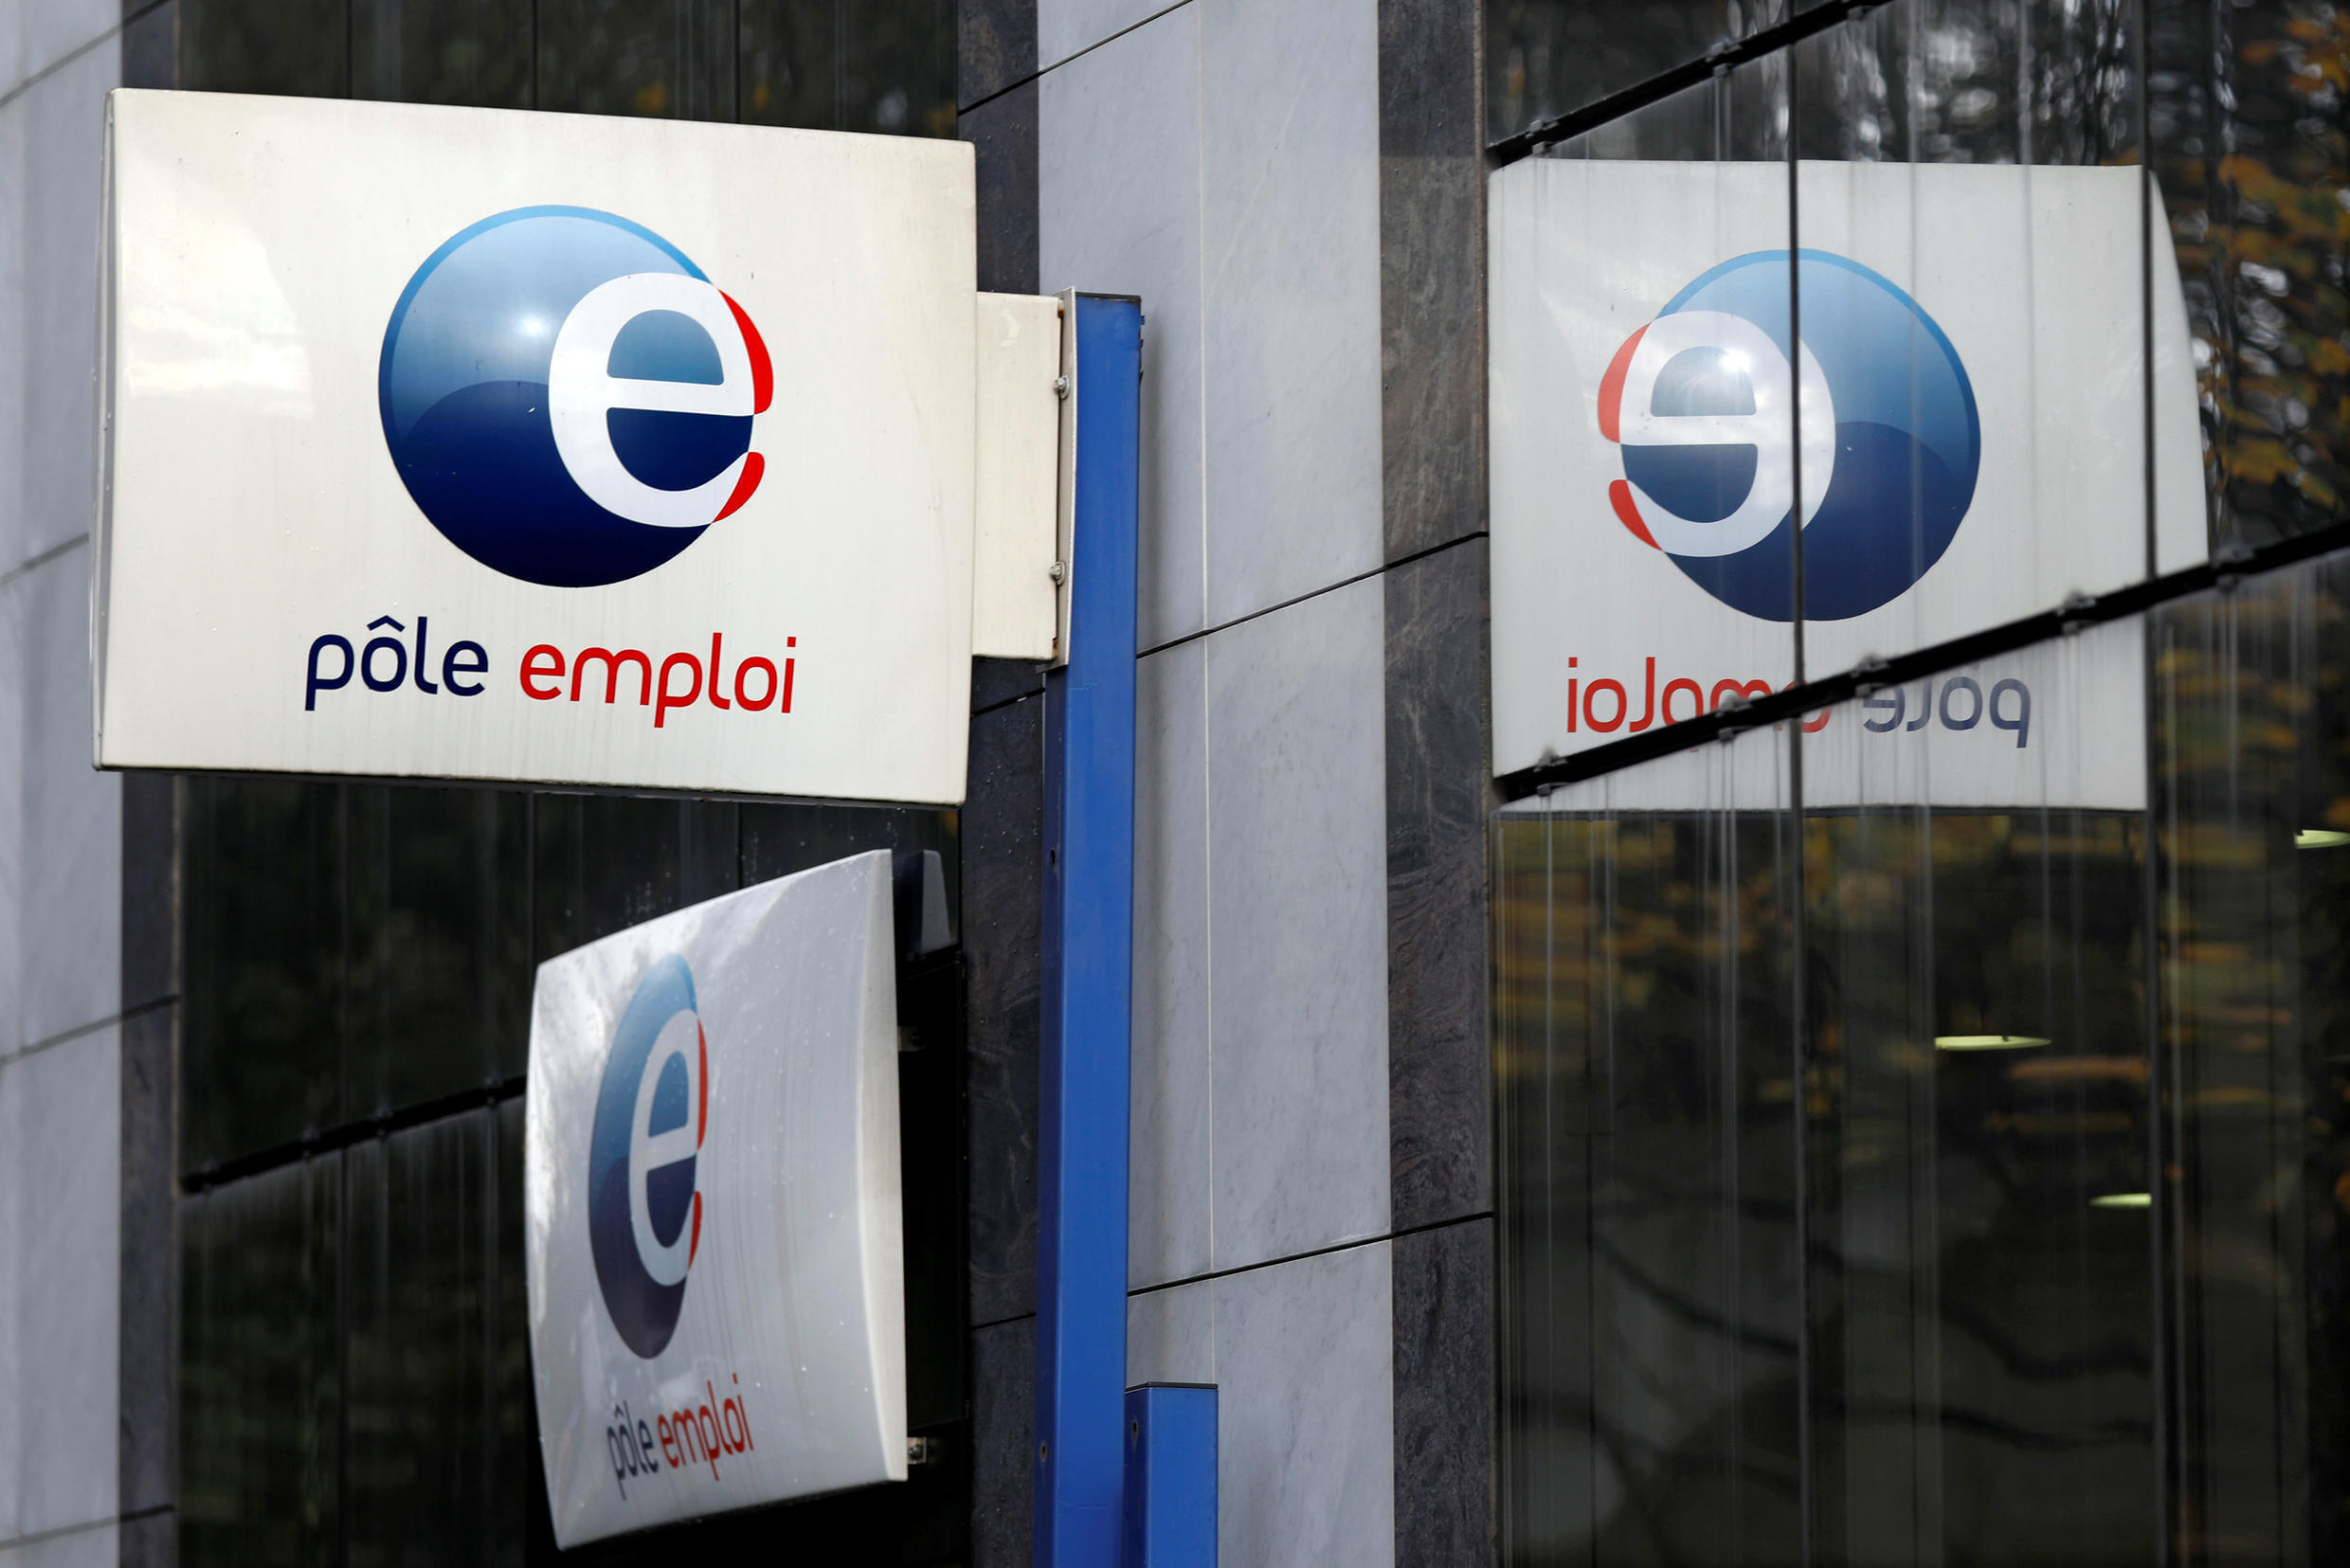 More workers, less work for Pôle Emploi, the National Employment Agency